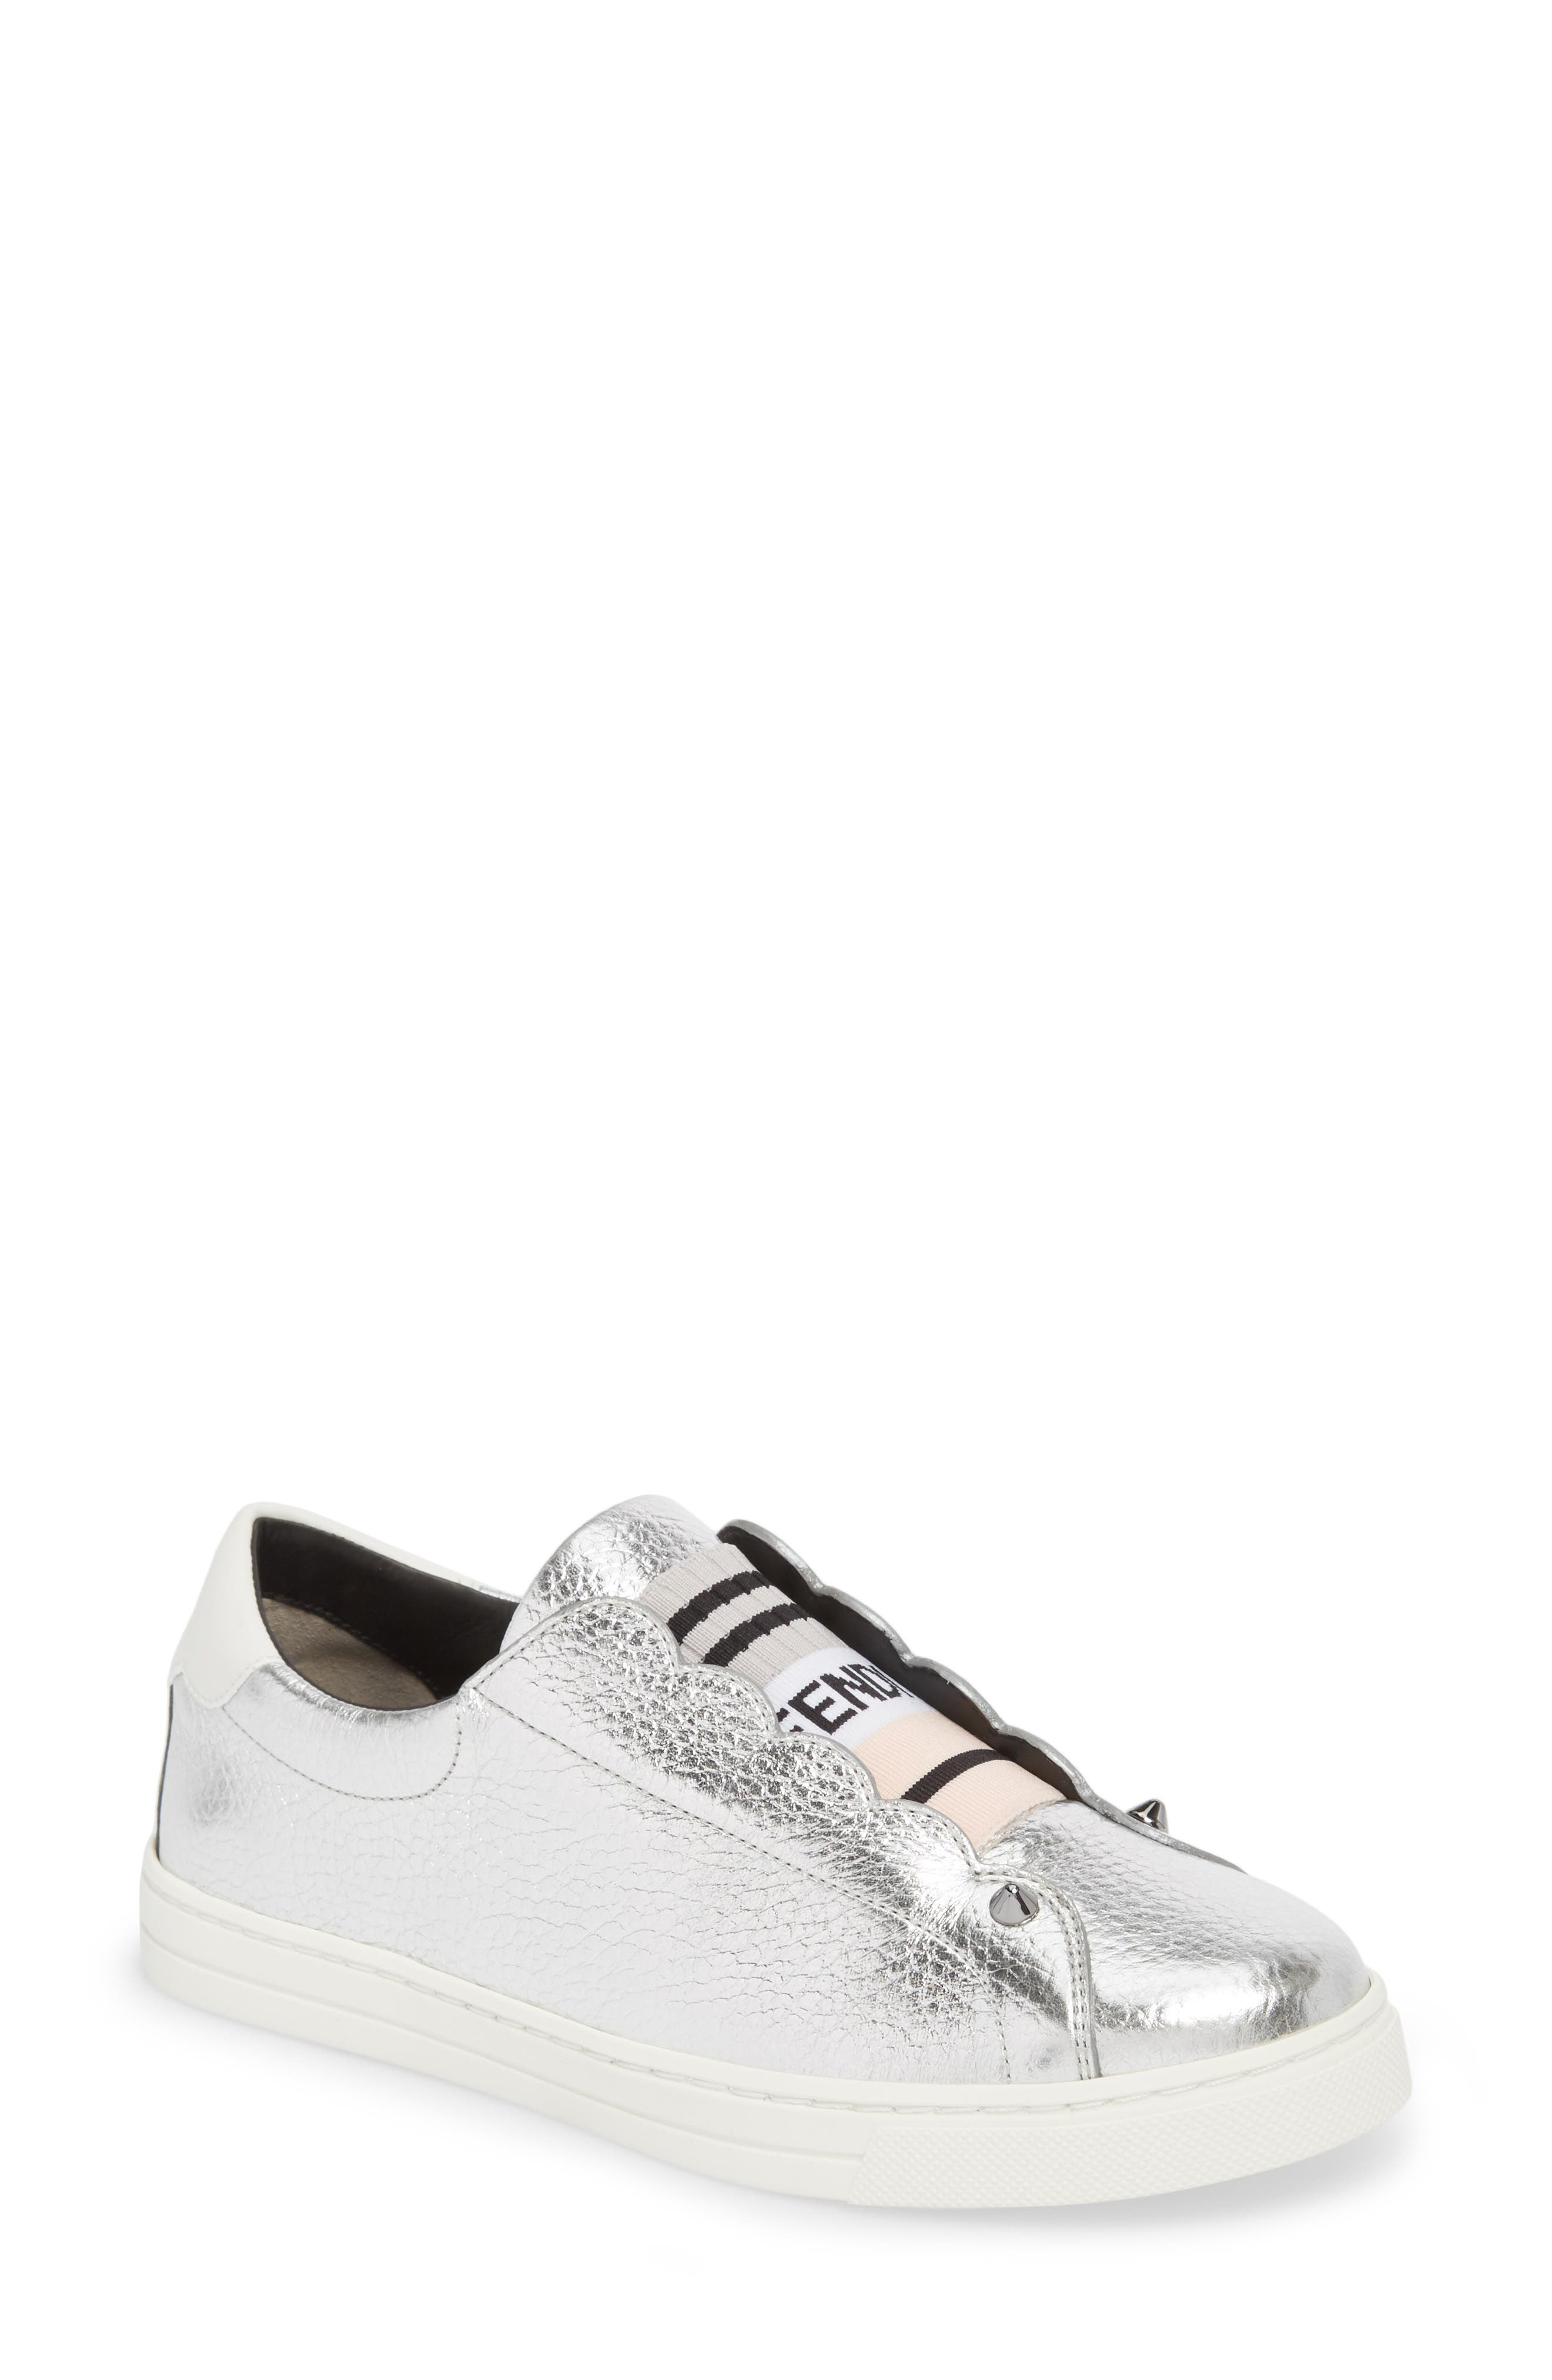 Sneakers for Women On Sale, White, Fabric, 2017, 4.5 5.5 6 7.5 Fendi